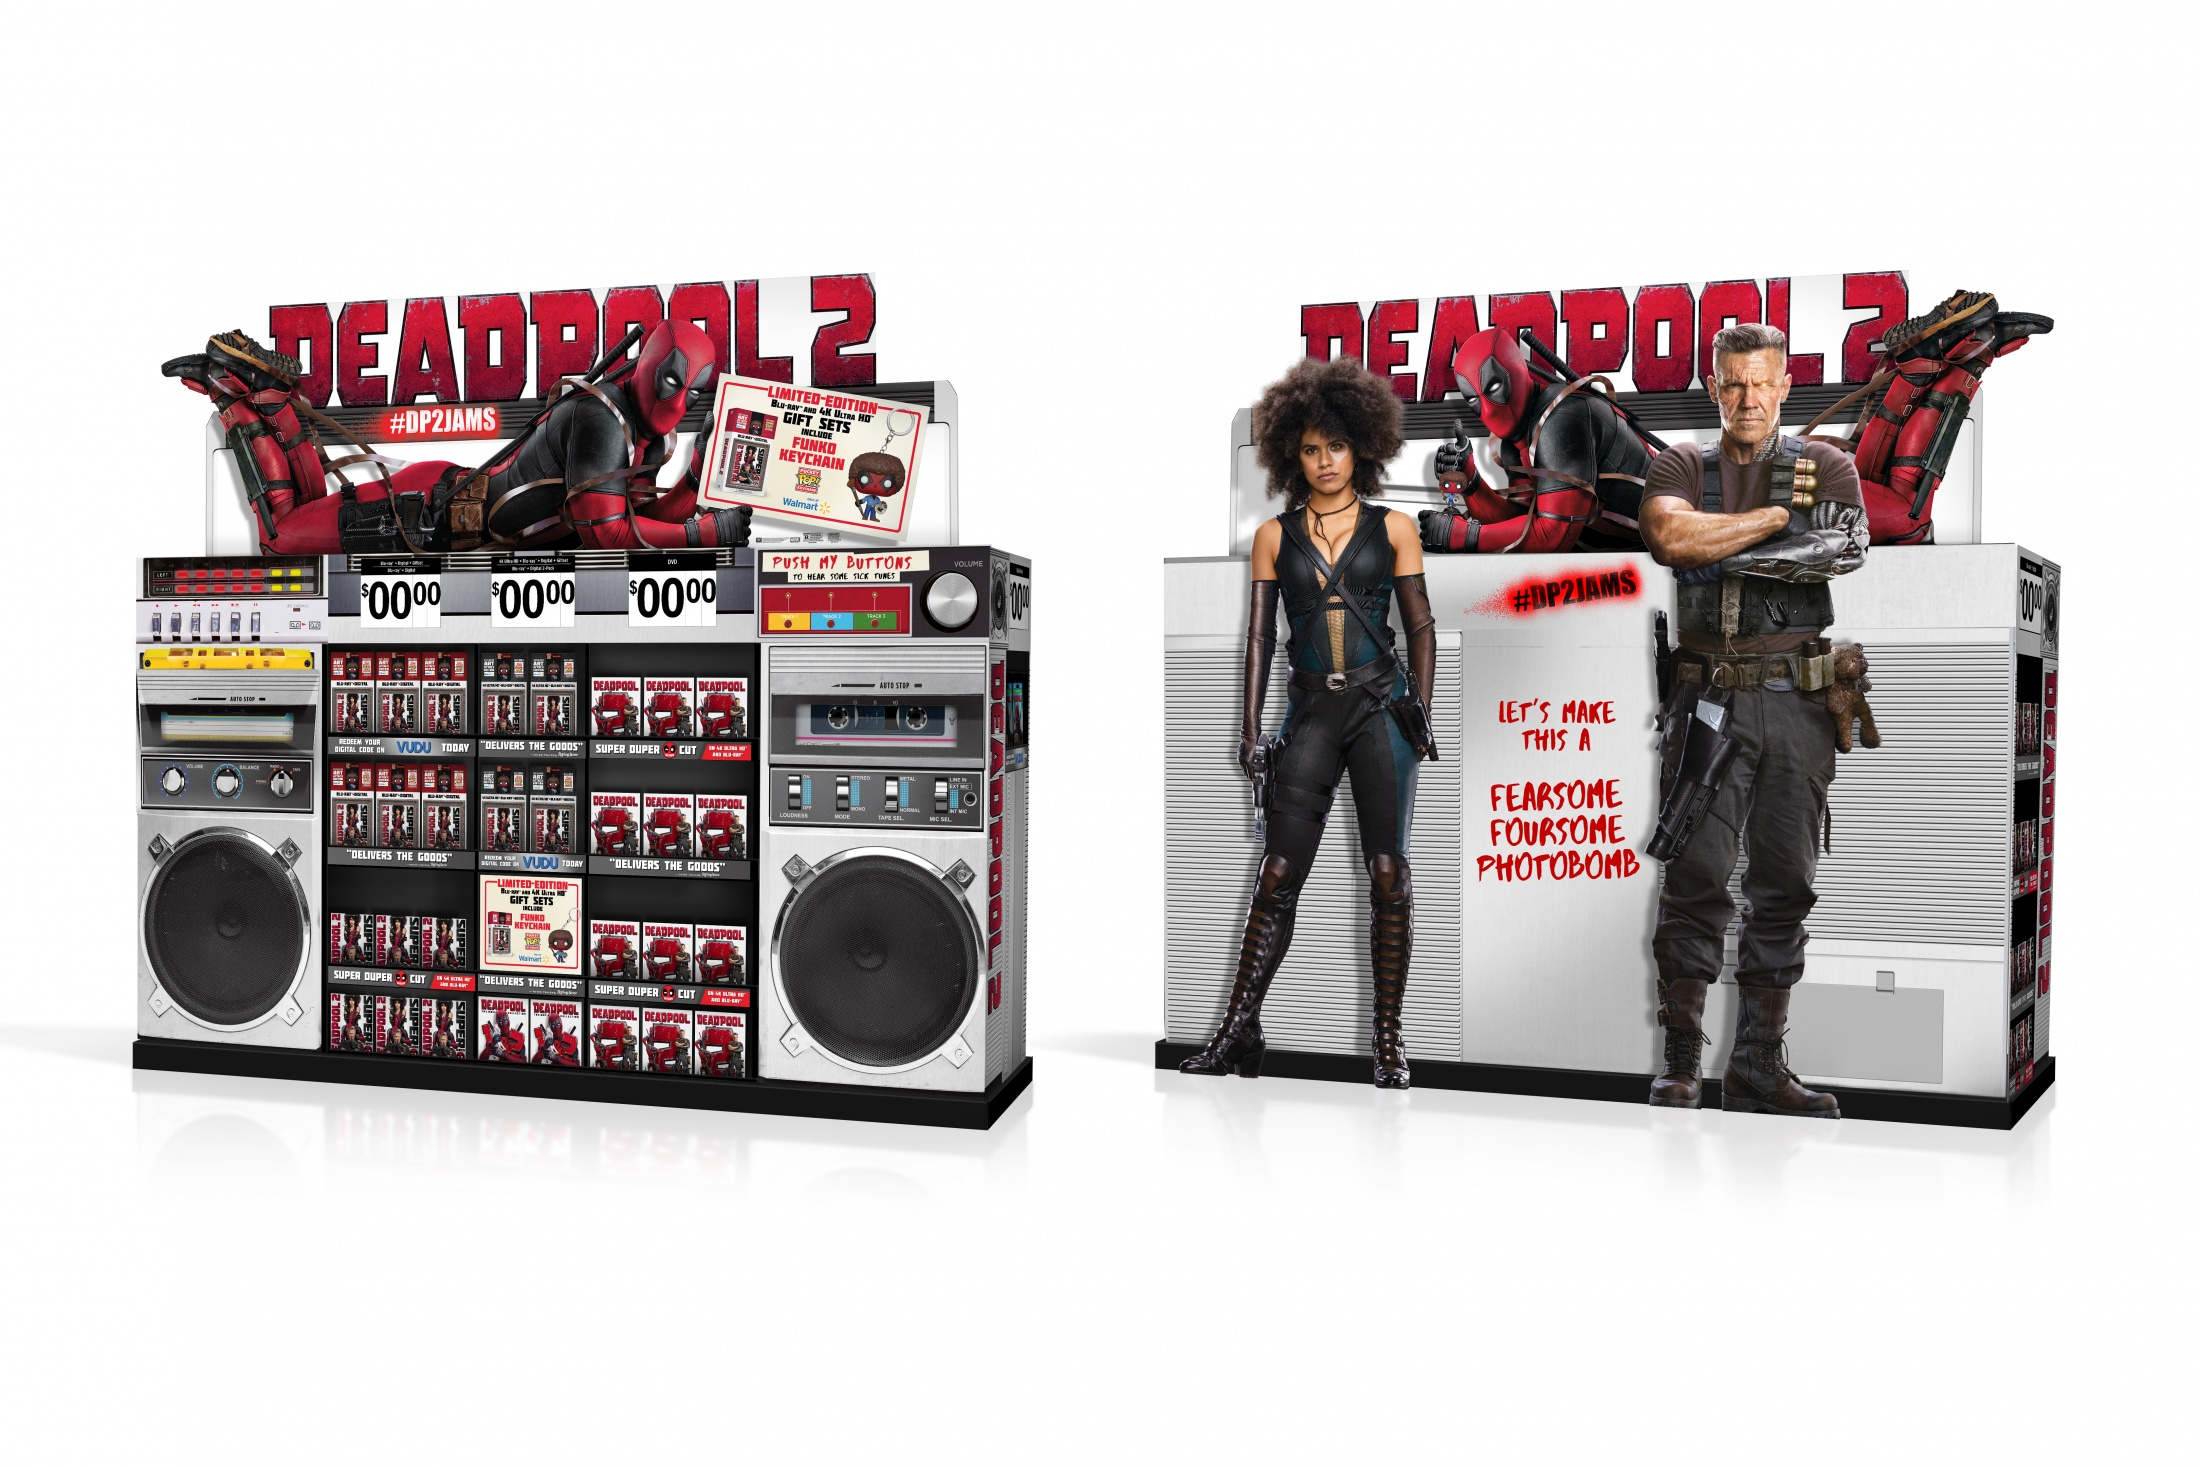 Thumbnail for DEADPOOL 2 Home Entertainment Display: WM WOW Boombox